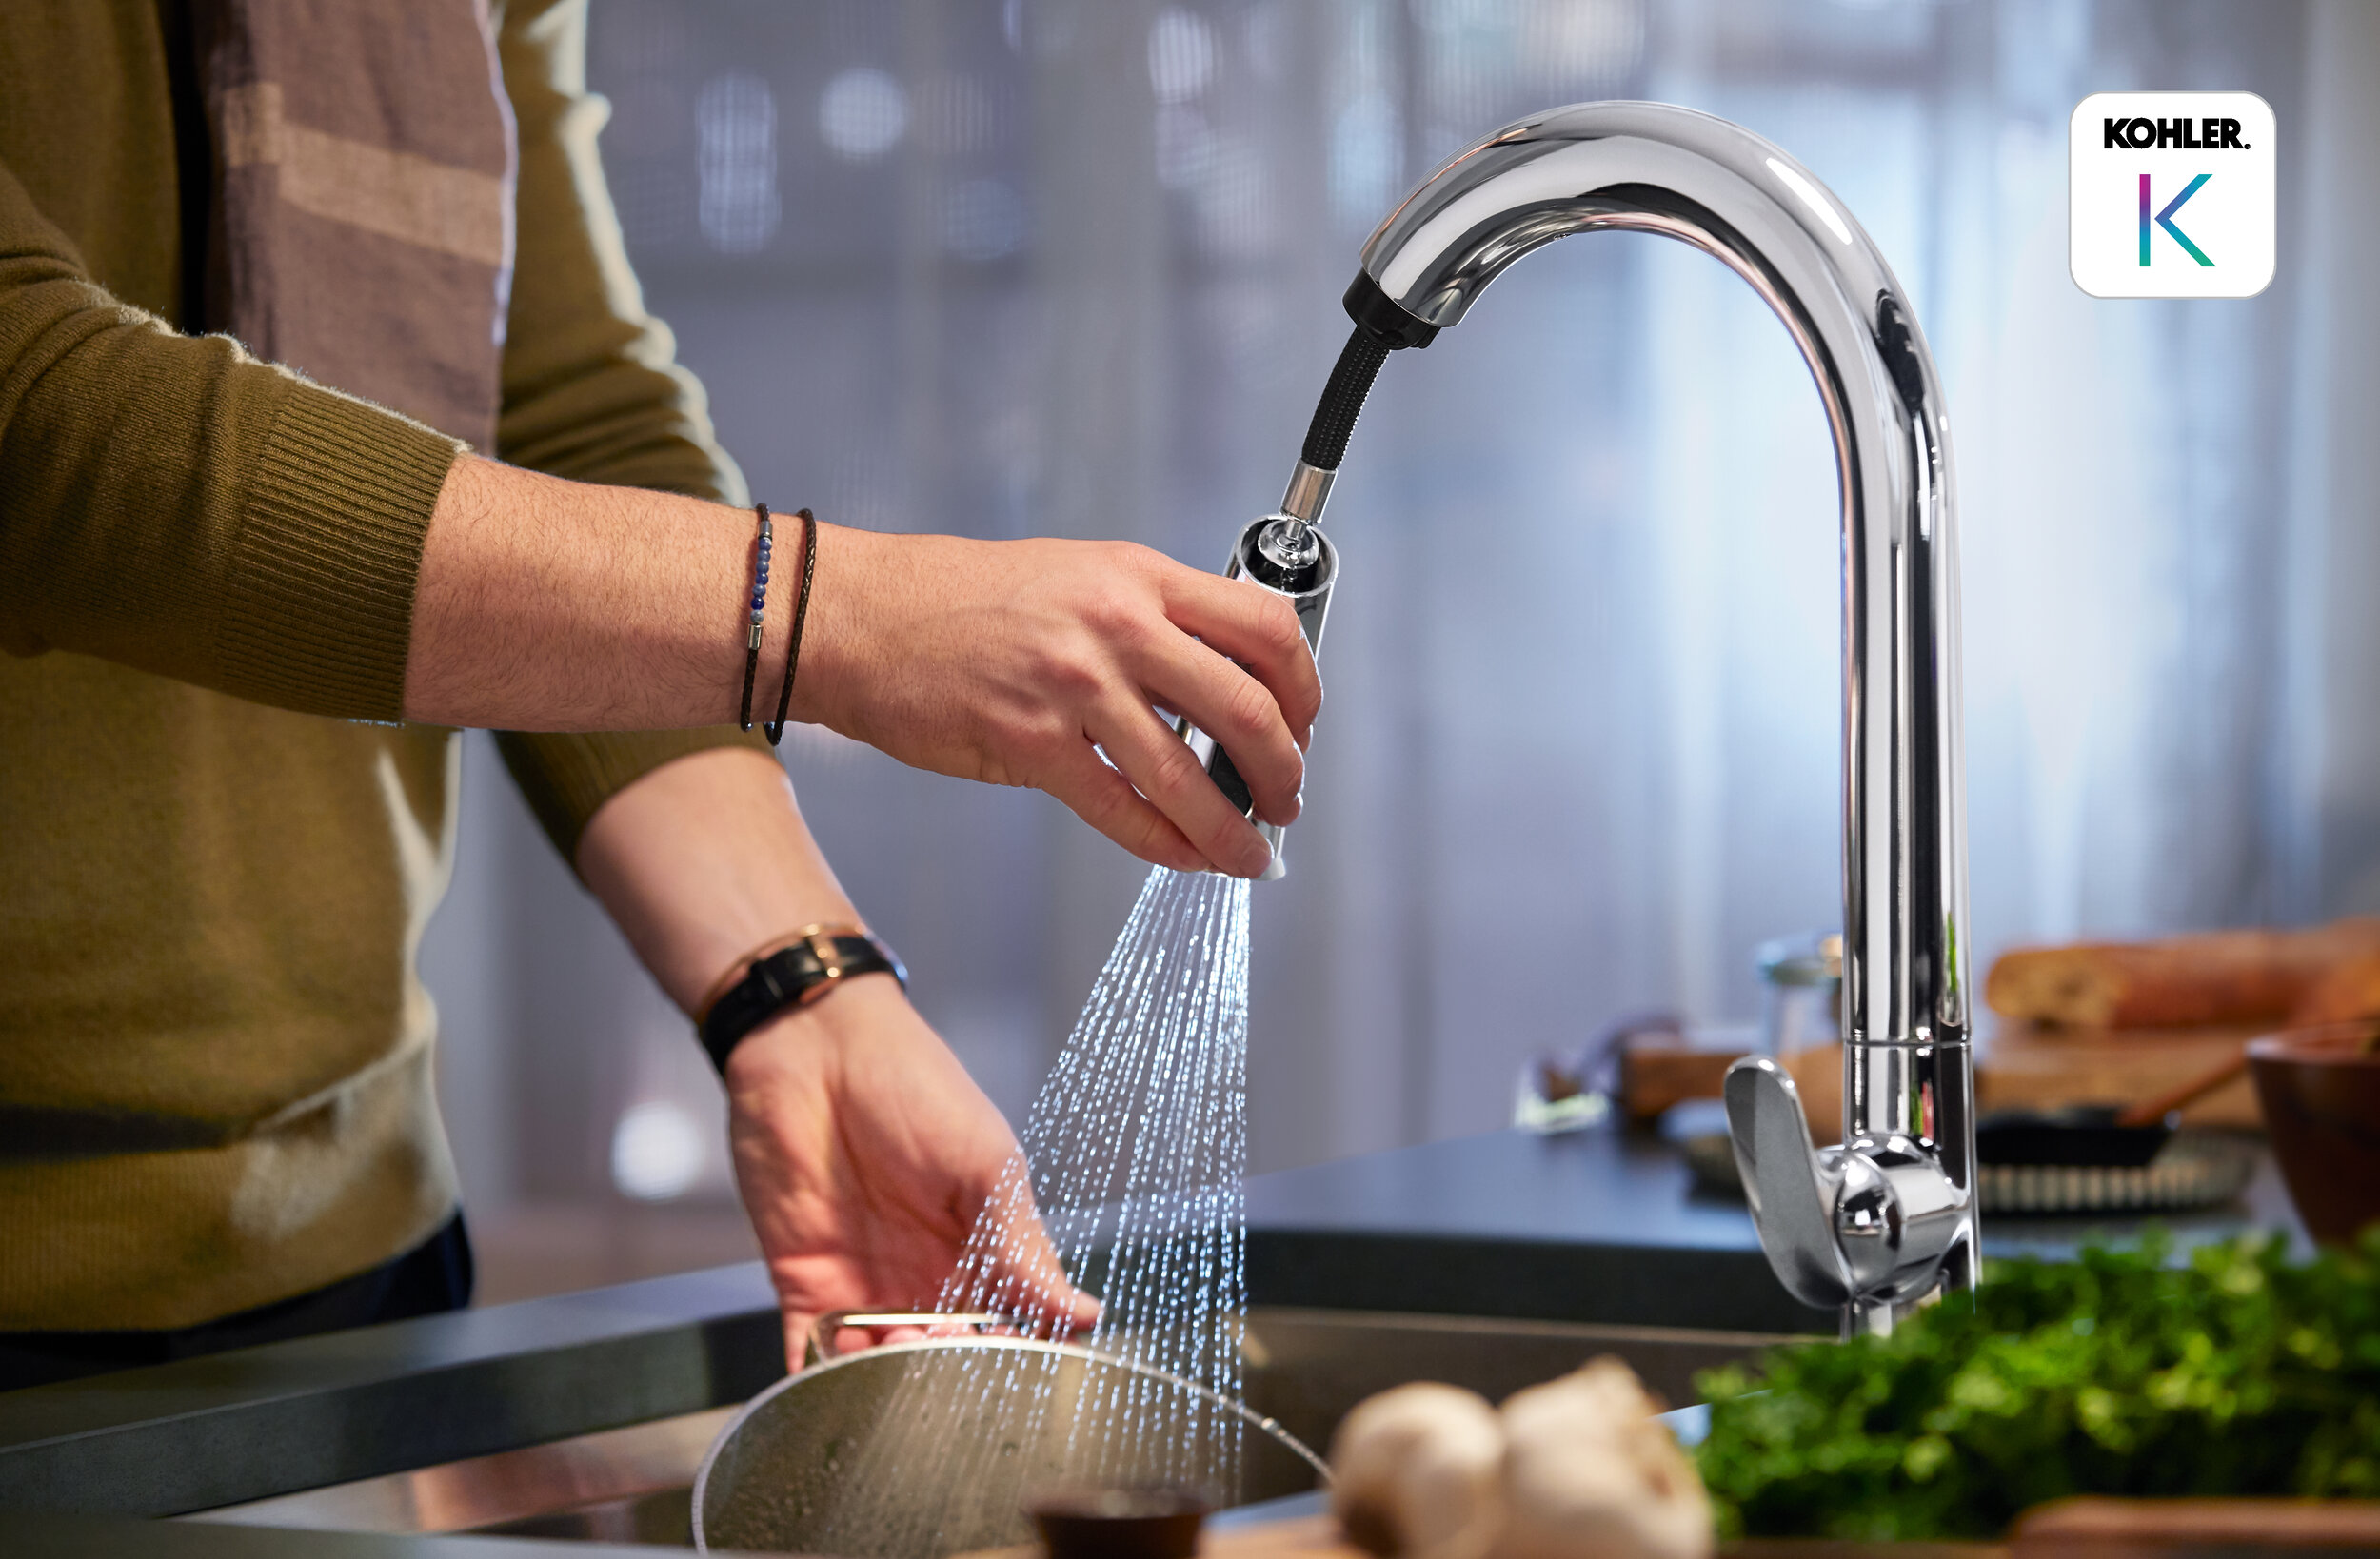 Faucets Category — Kohler Smart Home